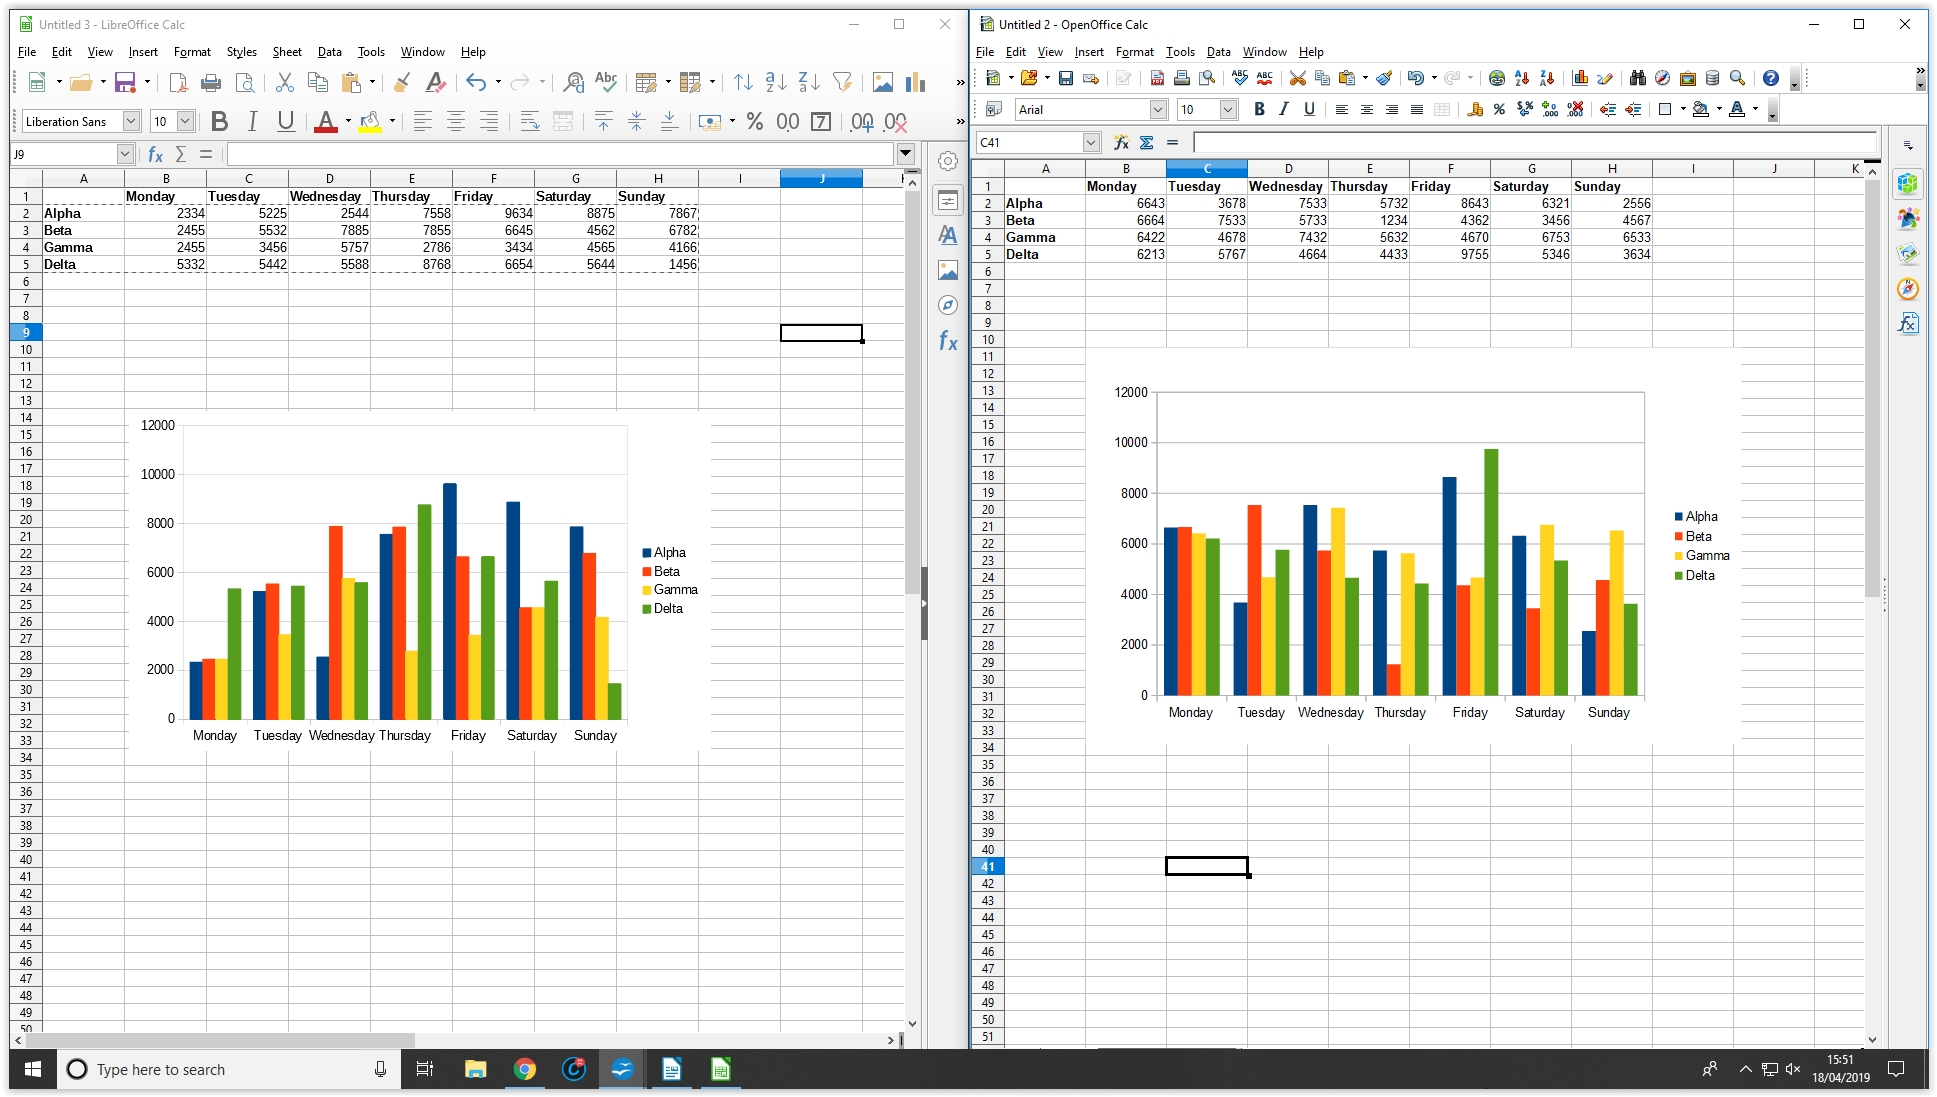 LibreOffice Calc and Apache OpenOffice